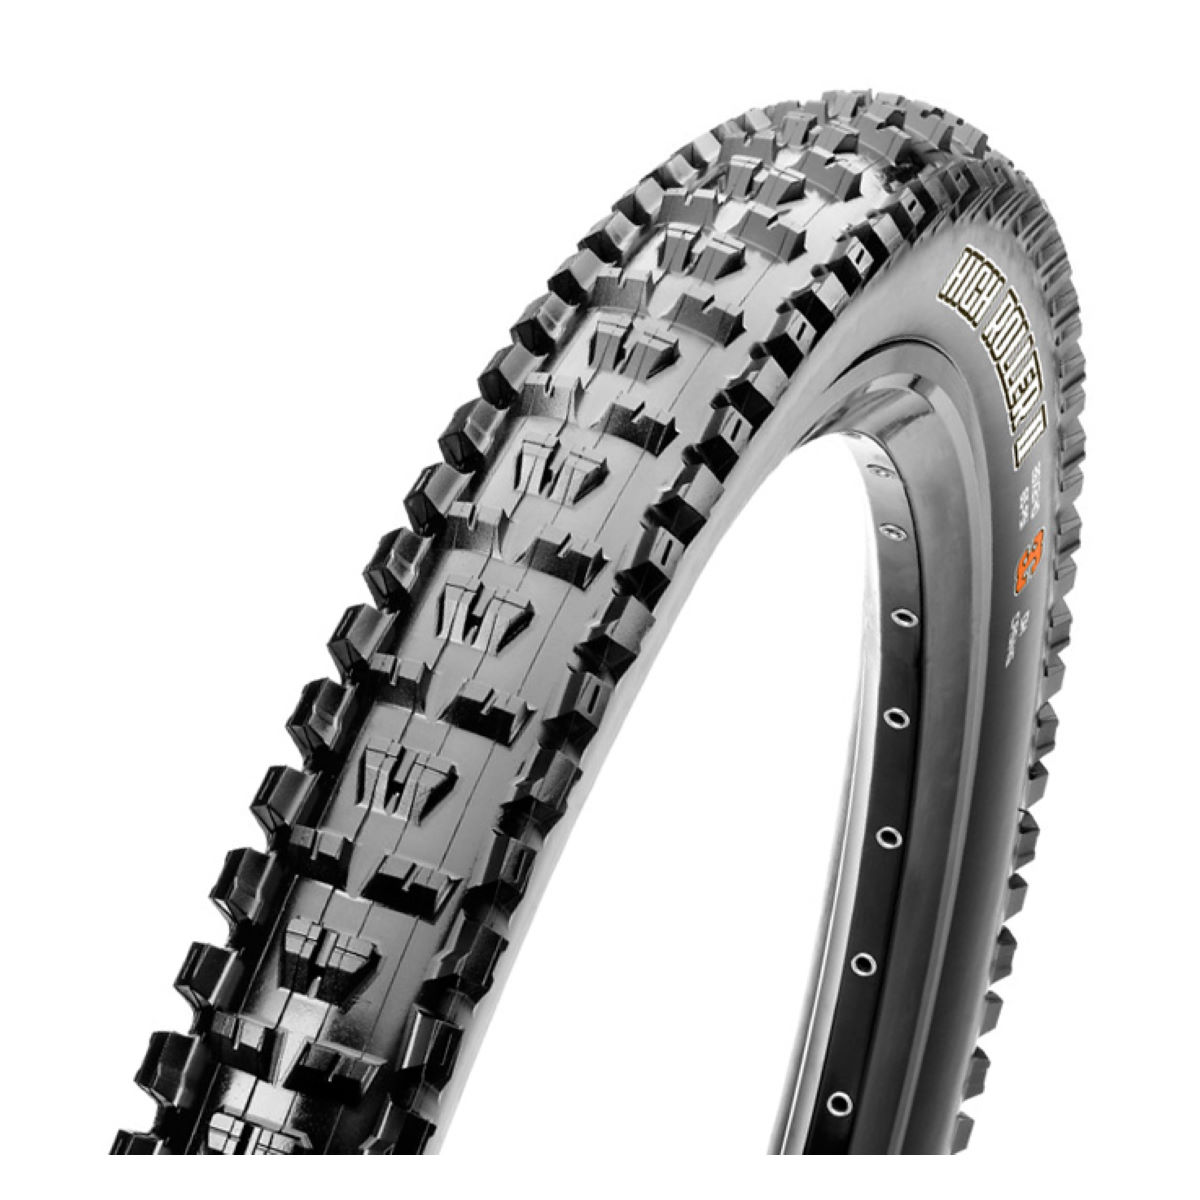 Maxxis Maxxis High Roller II 3C EXO TR 650B Folding Tyre   Tyres